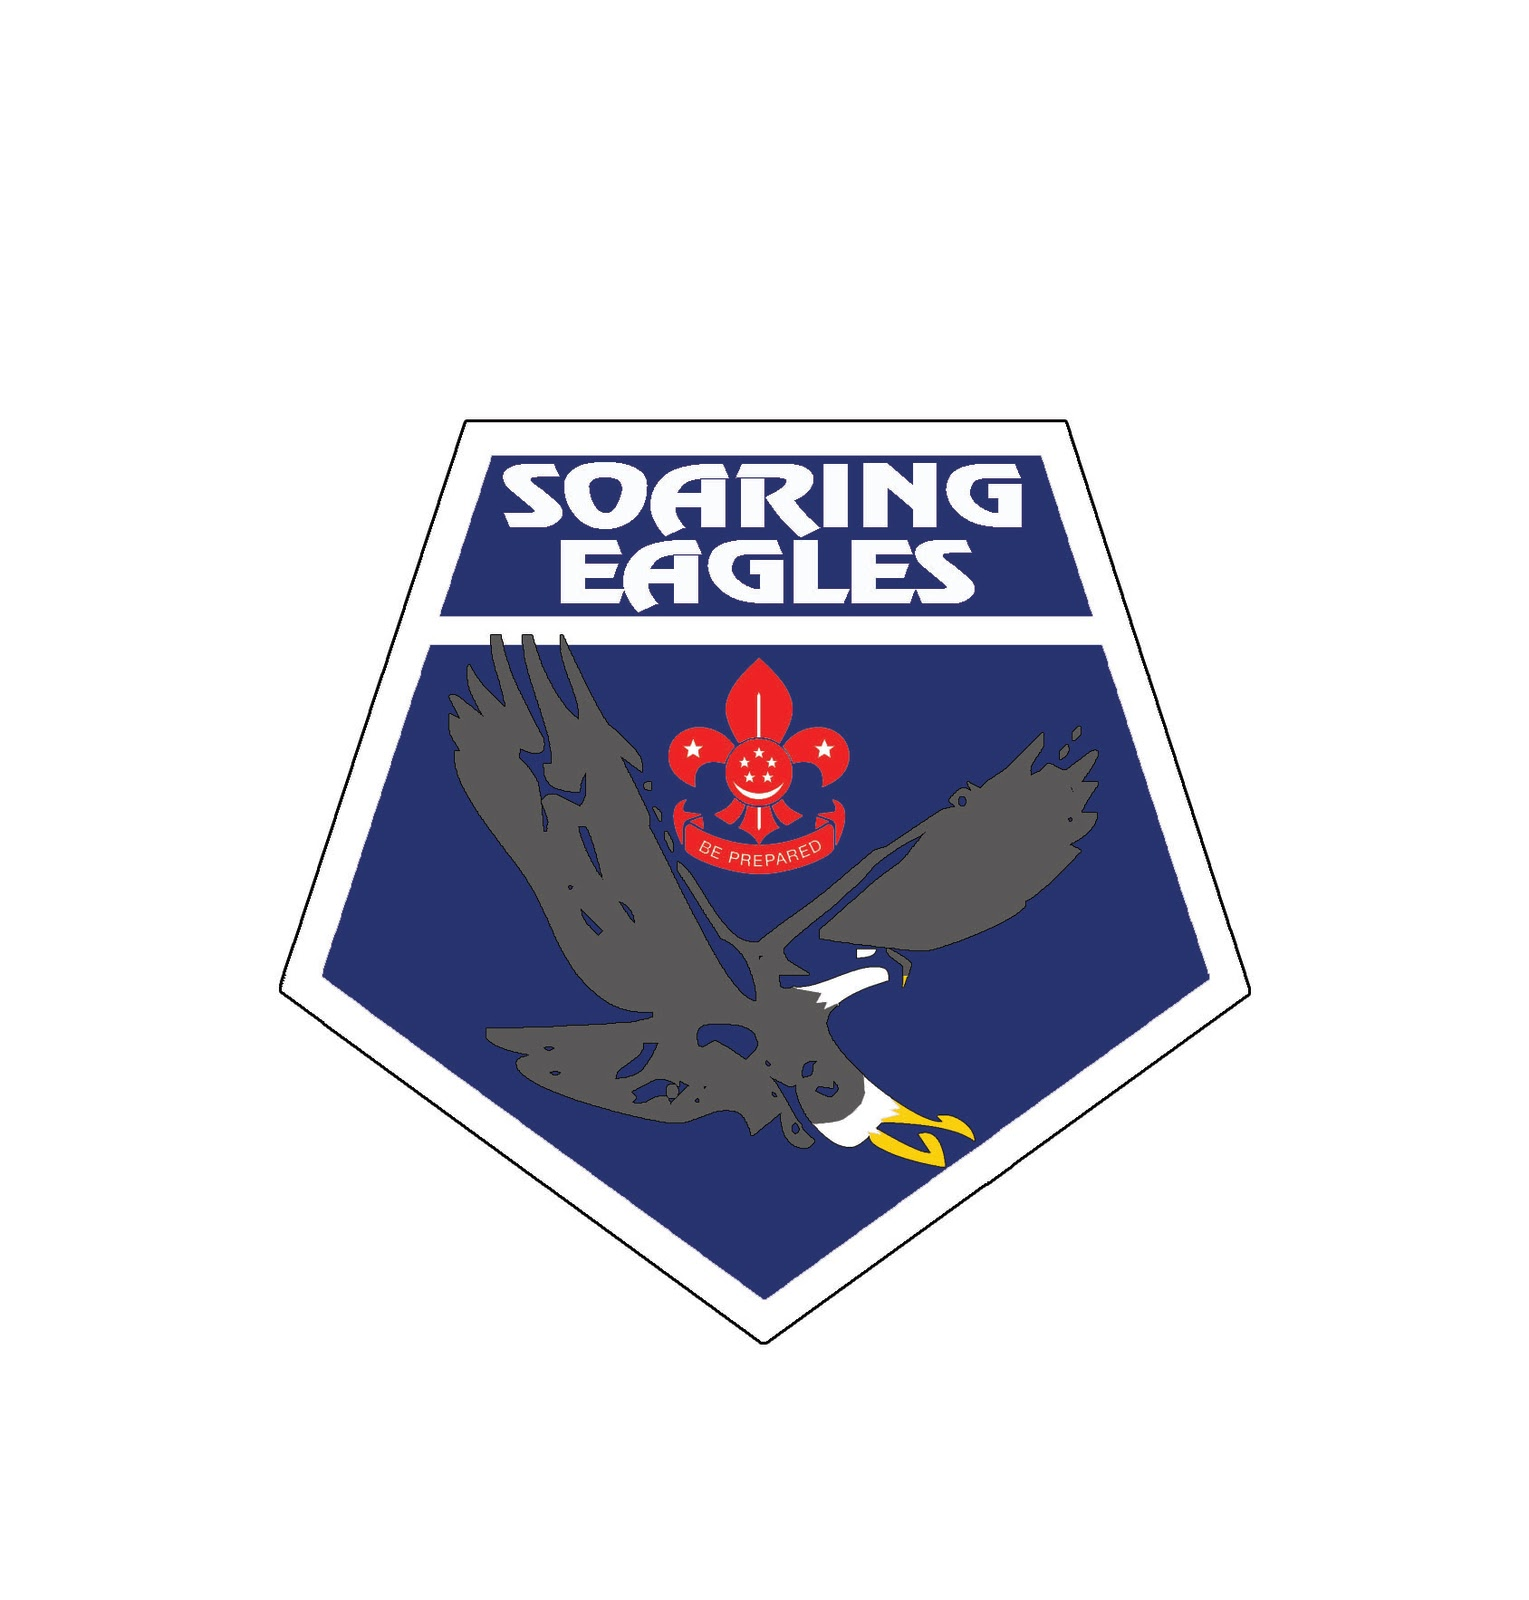 eagle scout logo cake ideas and designs